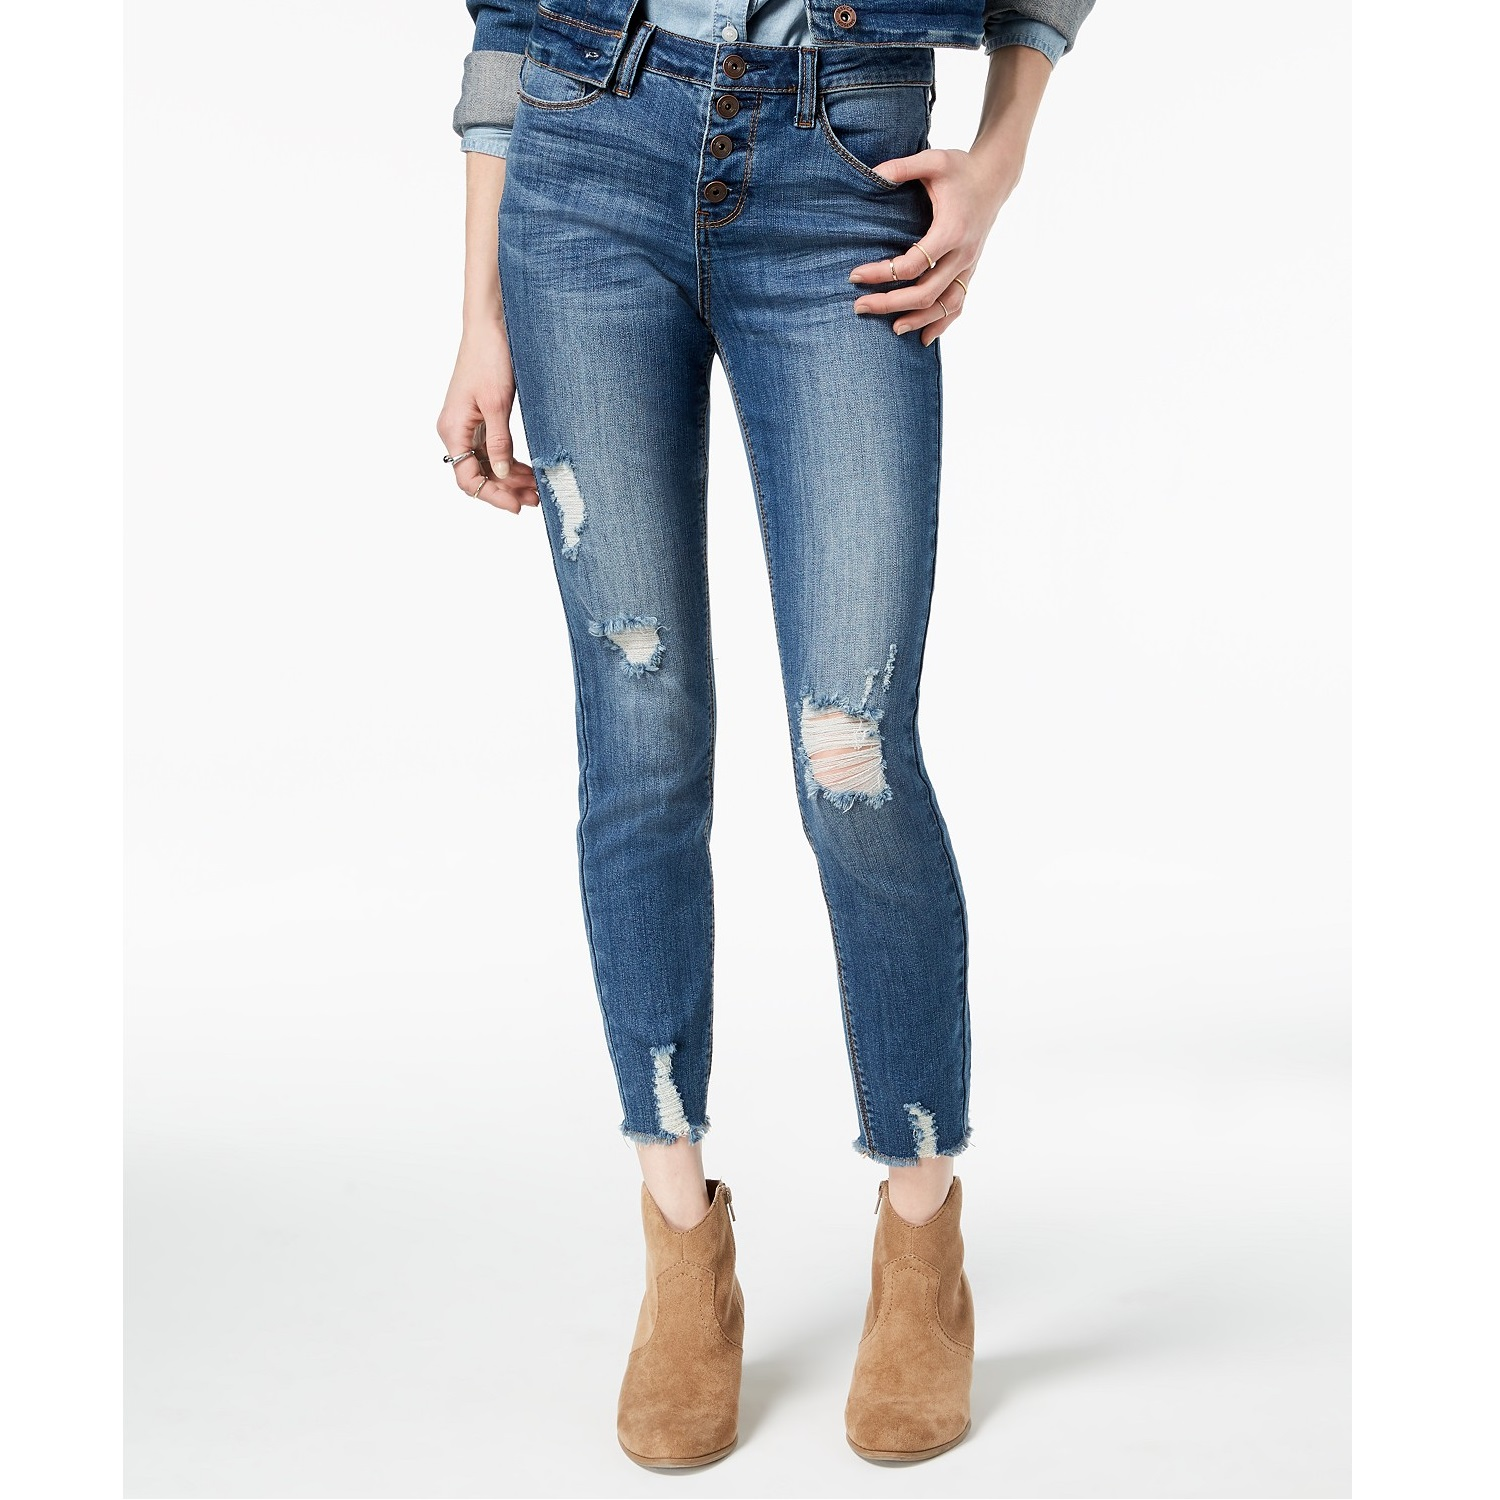 American Rag Juniors Embroidered Ripped Cropped Skinny Jeans